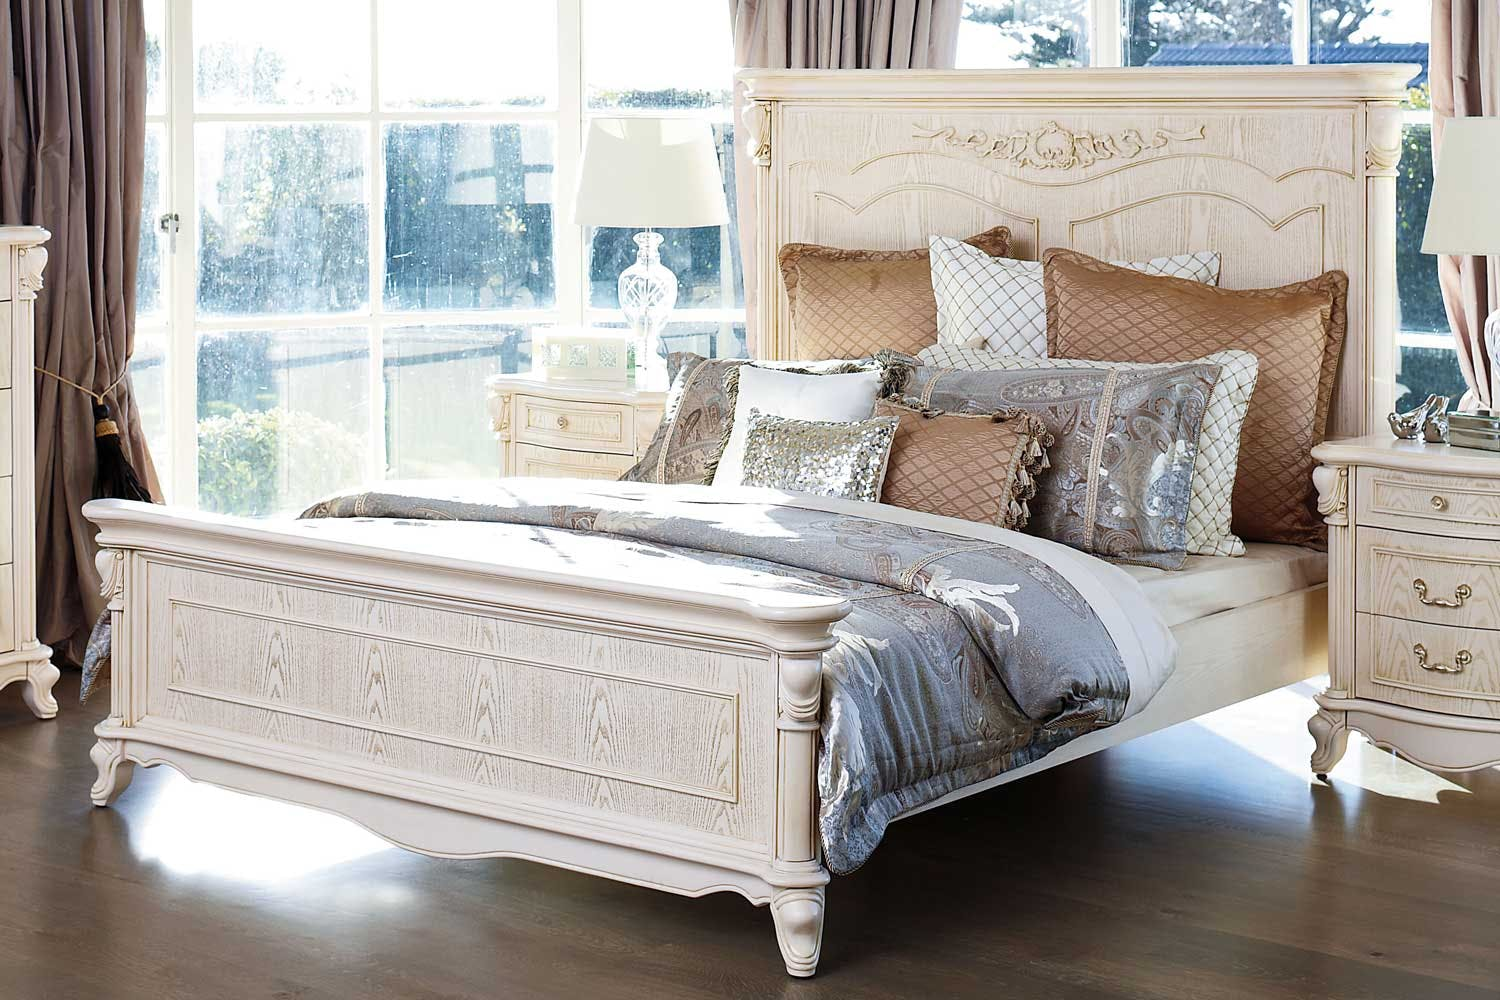 Chateau queen bed frame by sorensen furniture harvey for Chateau beds